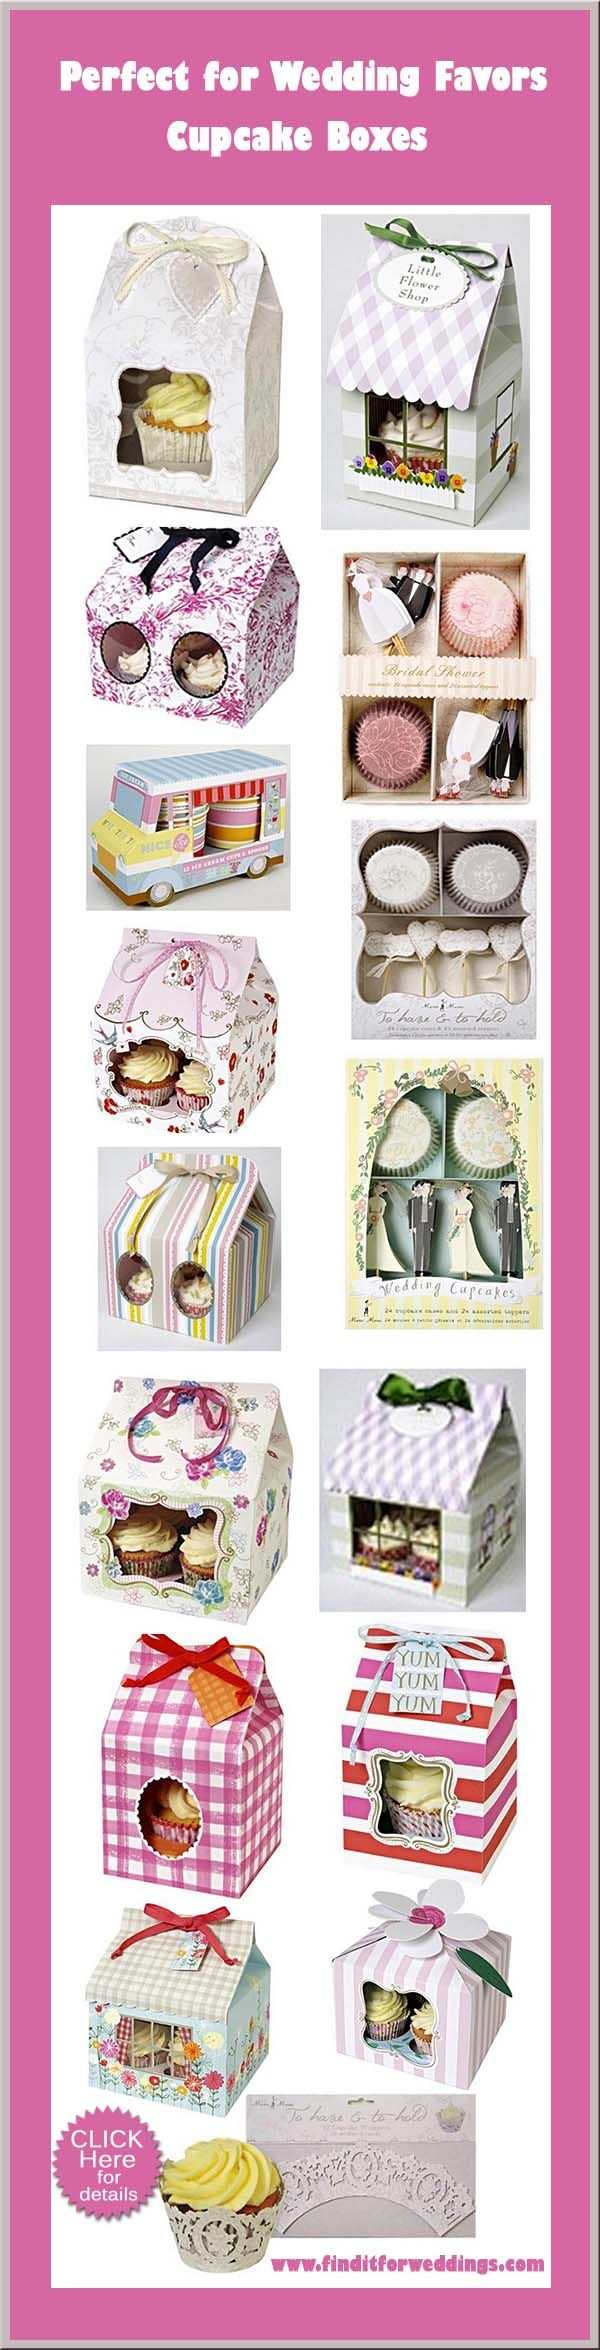 47 best Cupcake box images on Pinterest | Cupcake boxes, Box ...